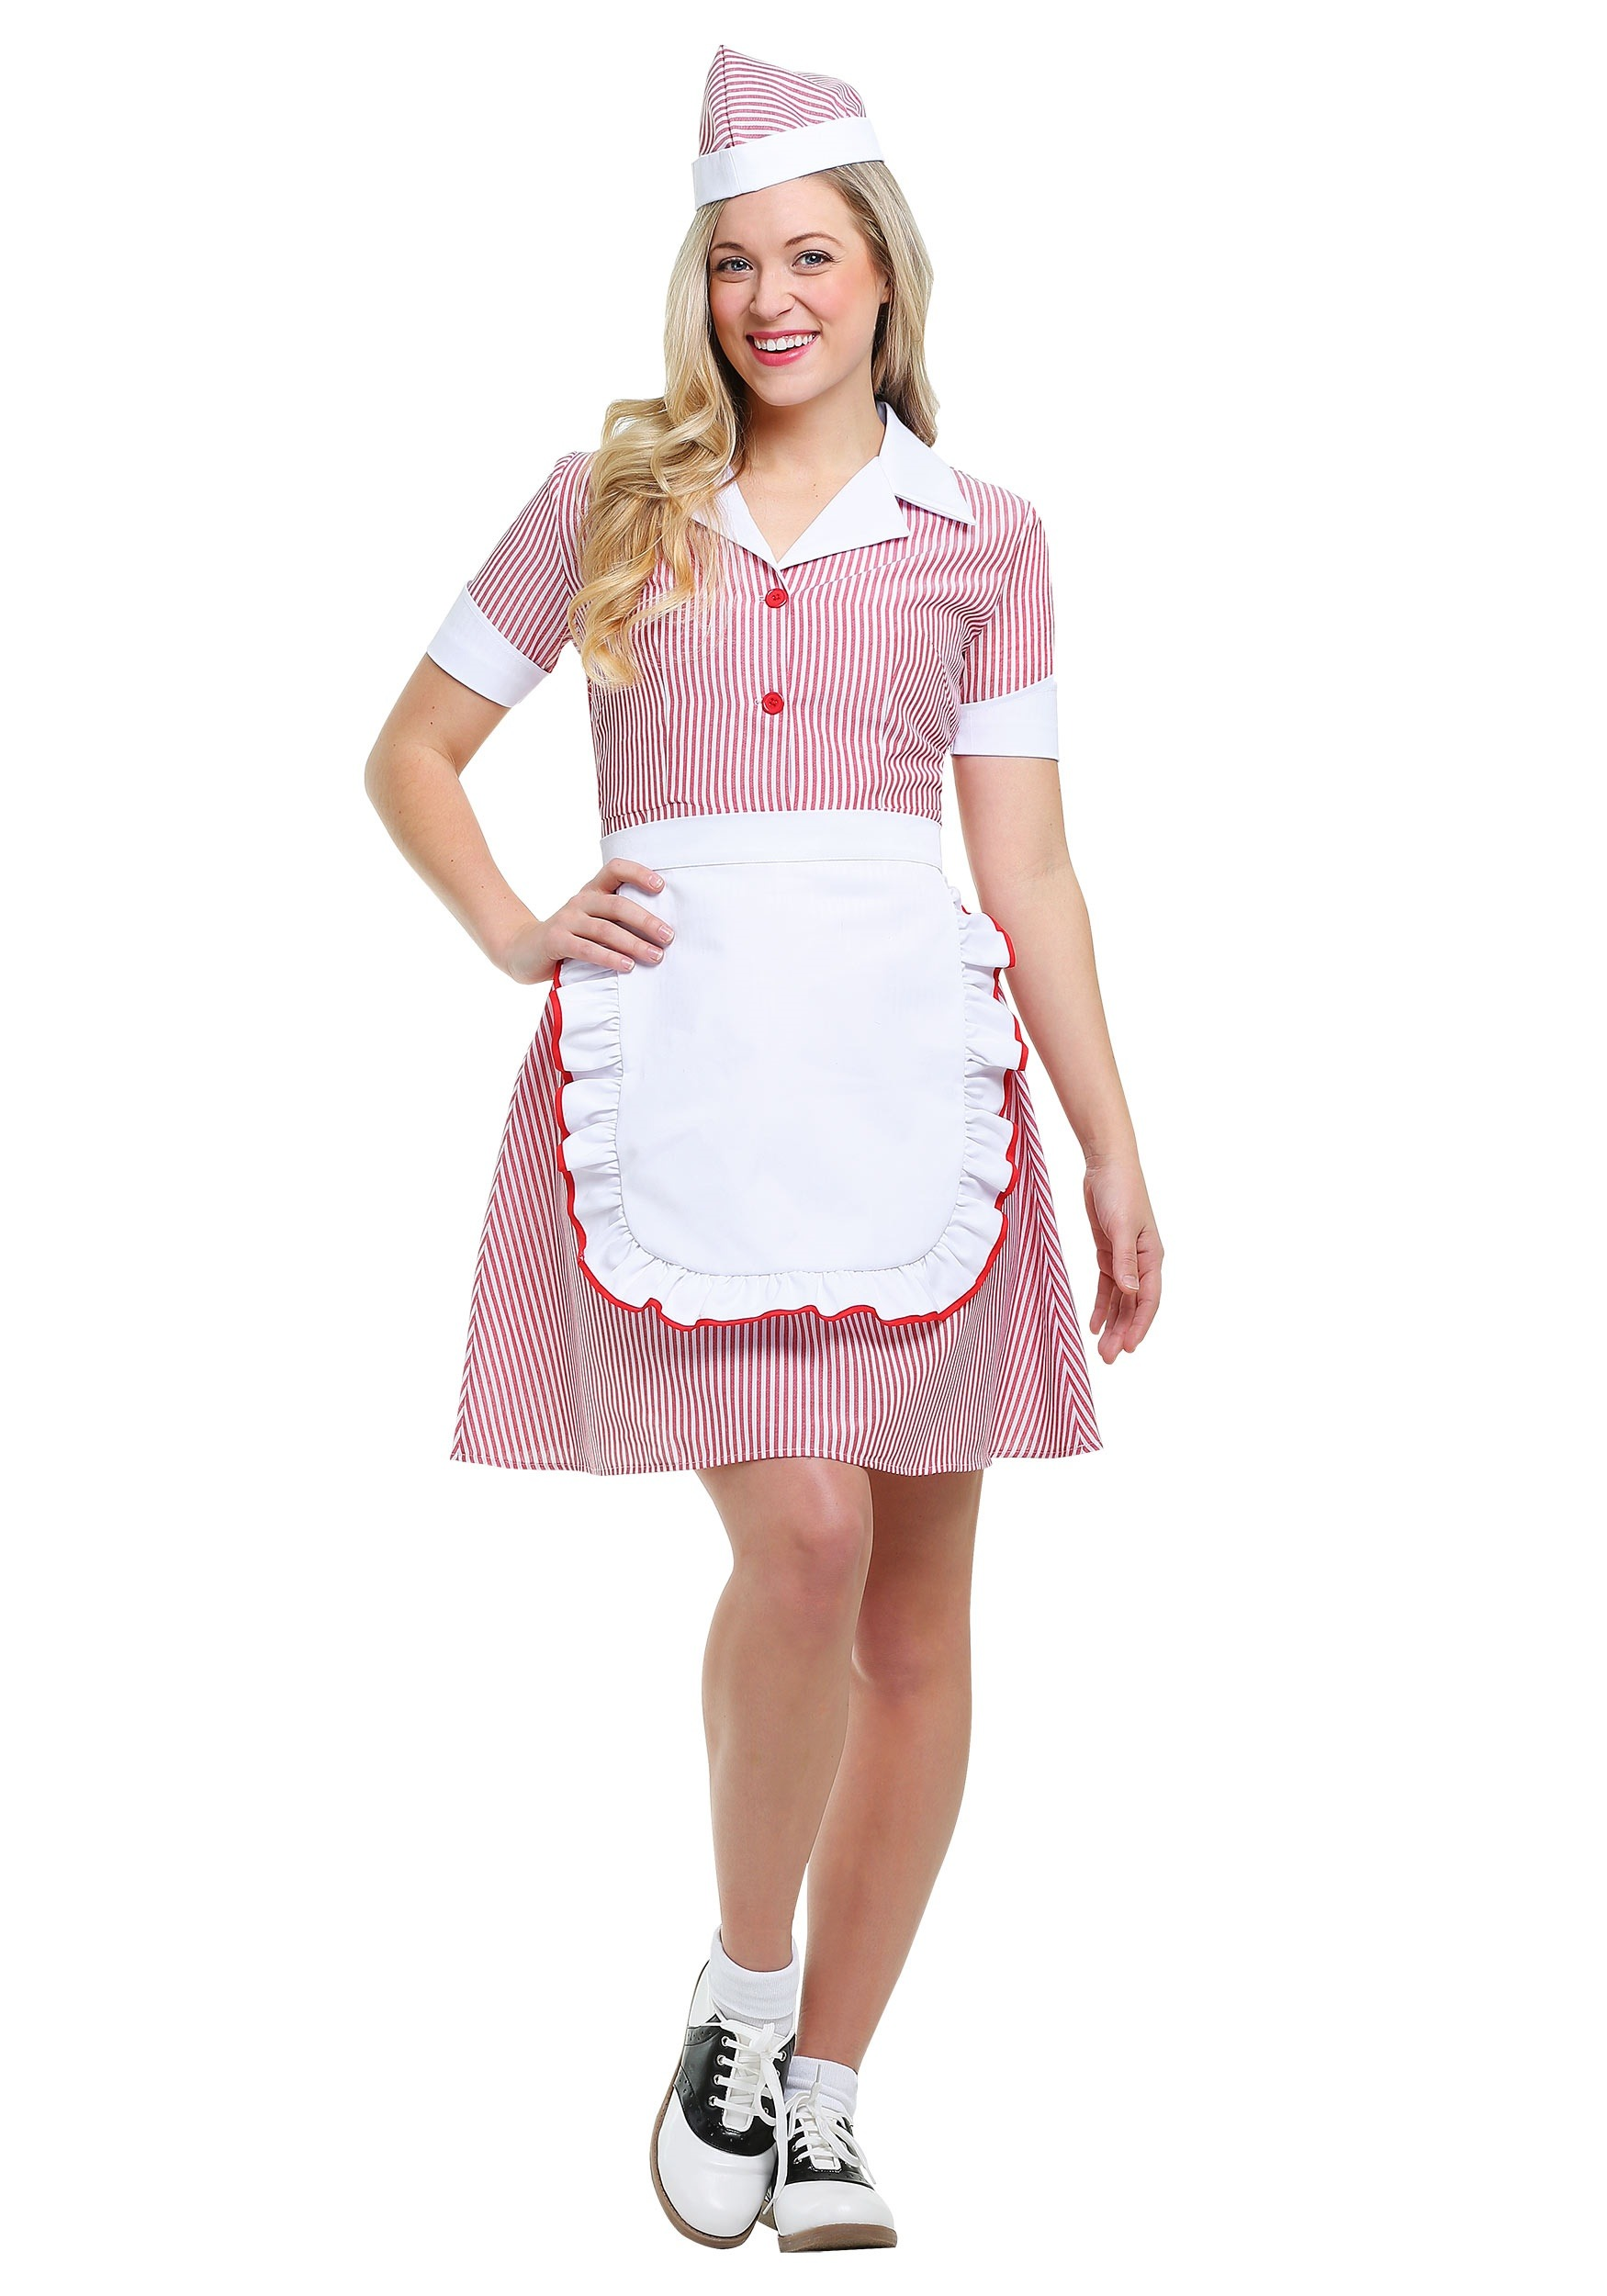 Women's Car Hop Costume